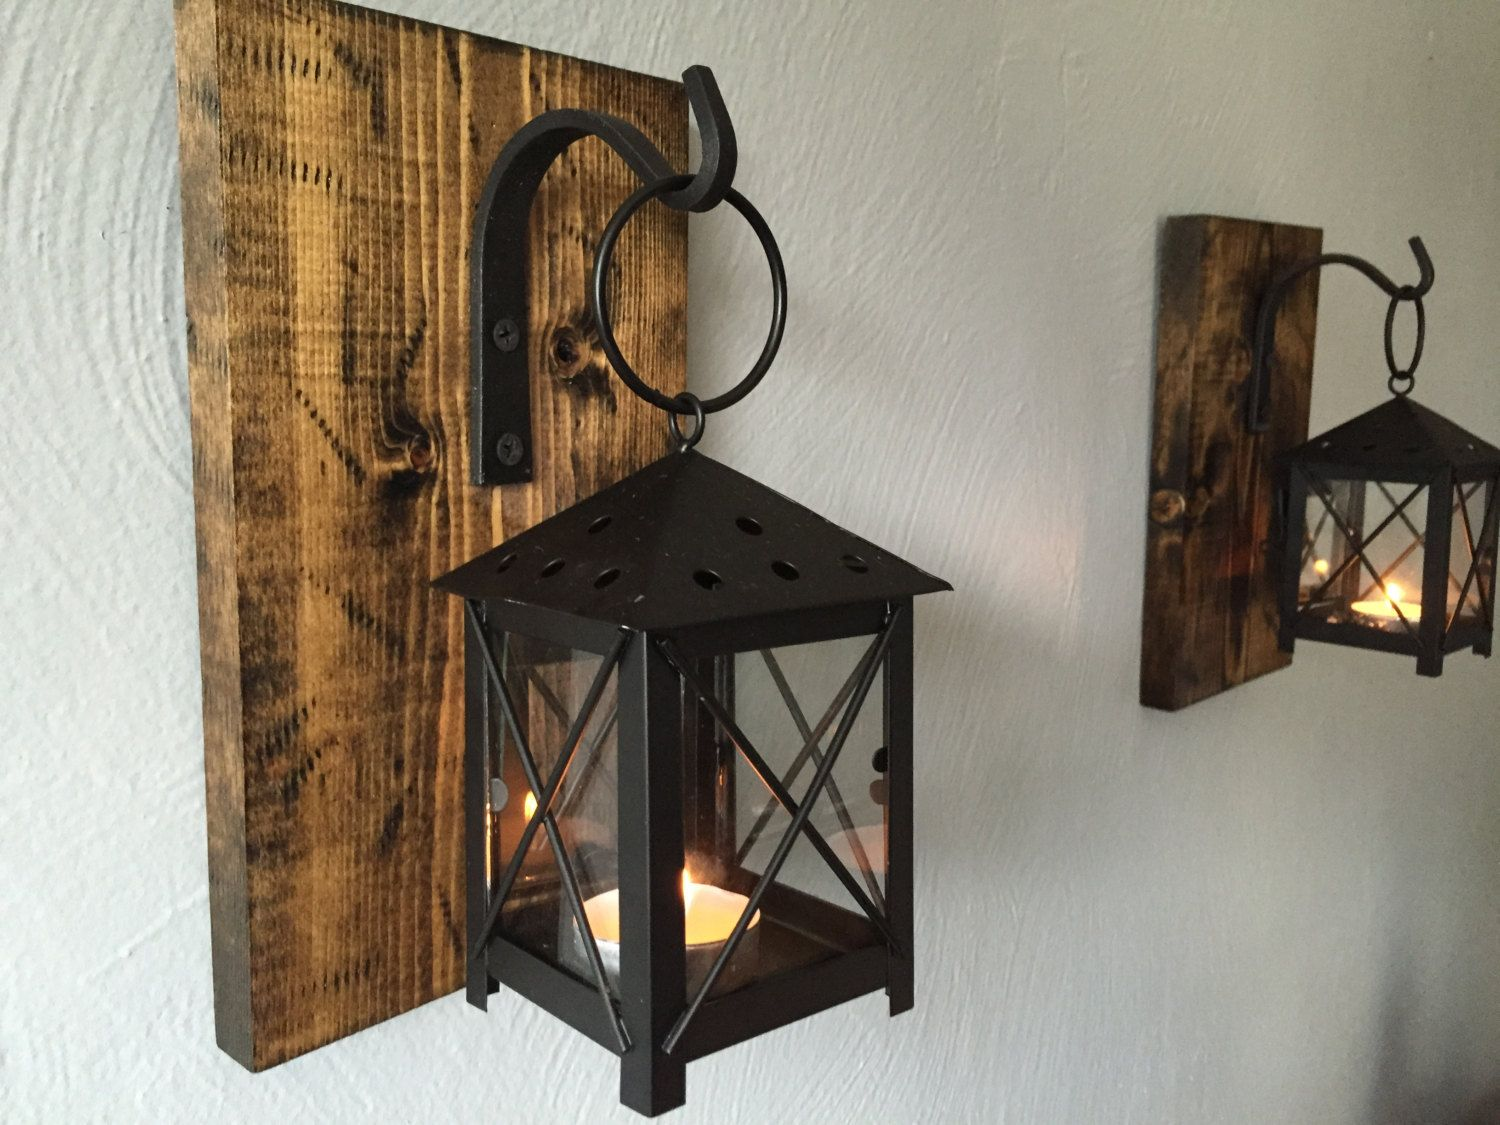 Pair Of Wall Sconces - L&s - Lighting - Candle Holder - Barnwood - Rustic - Candle Lanterns - Wrought Iron - Hanging Wall Decor - Cottage & Rustic Candle Wall Sconces Popular | Beautiful Chandeliers | Wall ... azcodes.com